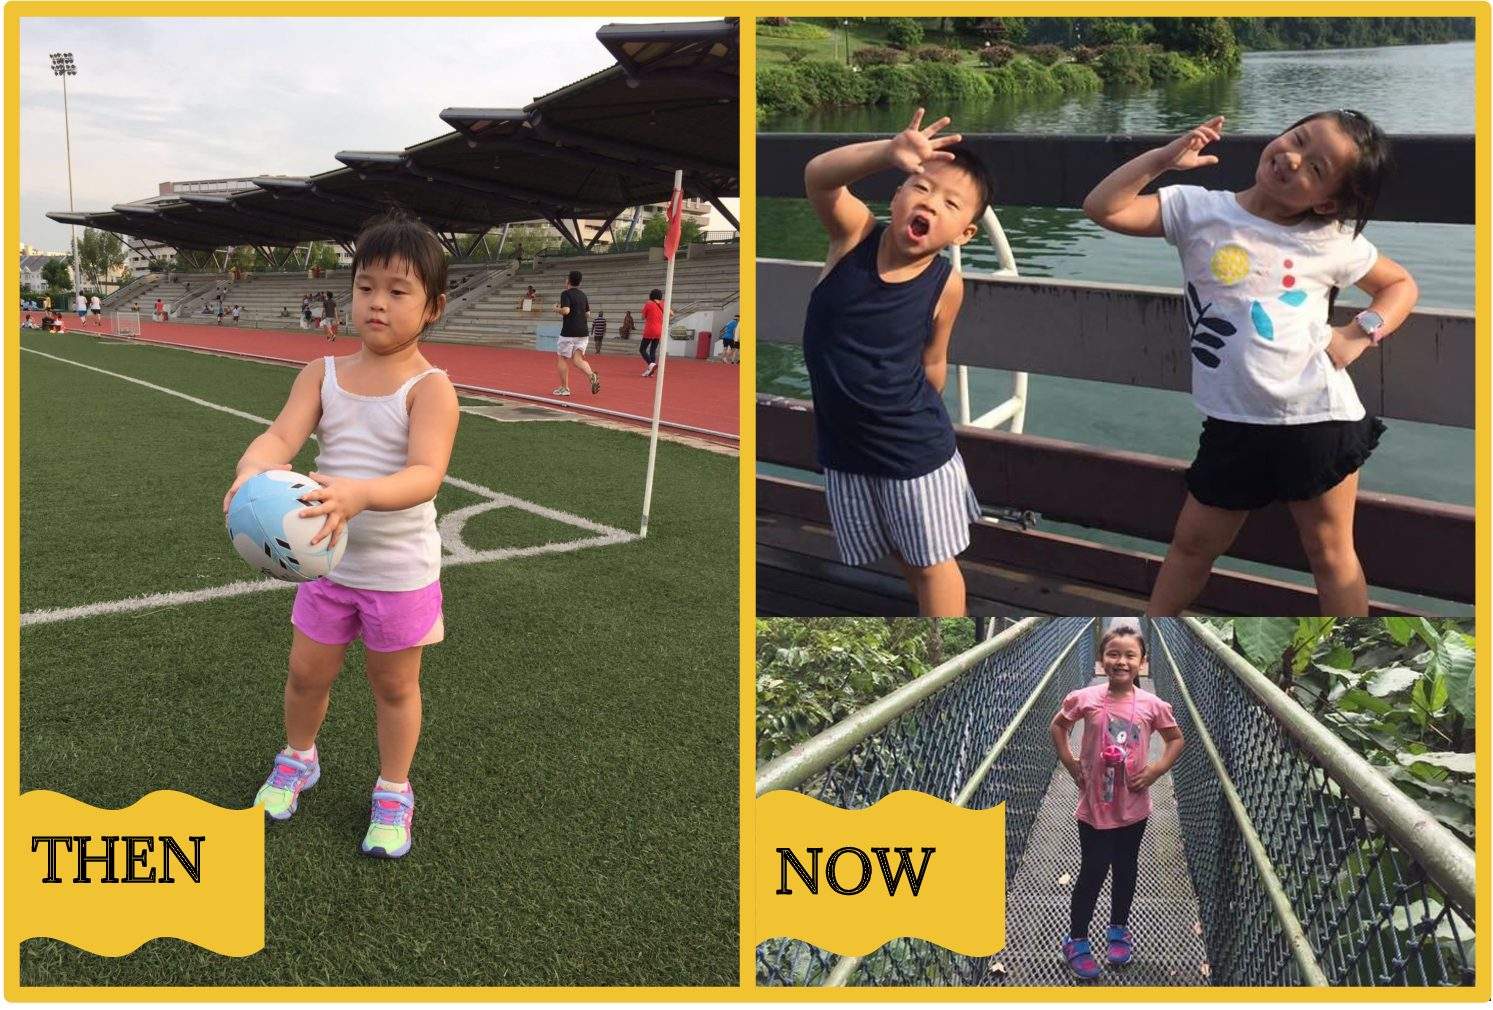 Singapore Pre-school Success Story: With the help of Mom and a Kurbo coach, Emma, 6, and Noah, 4, set themselves up for a lifetime of healthy habits.**